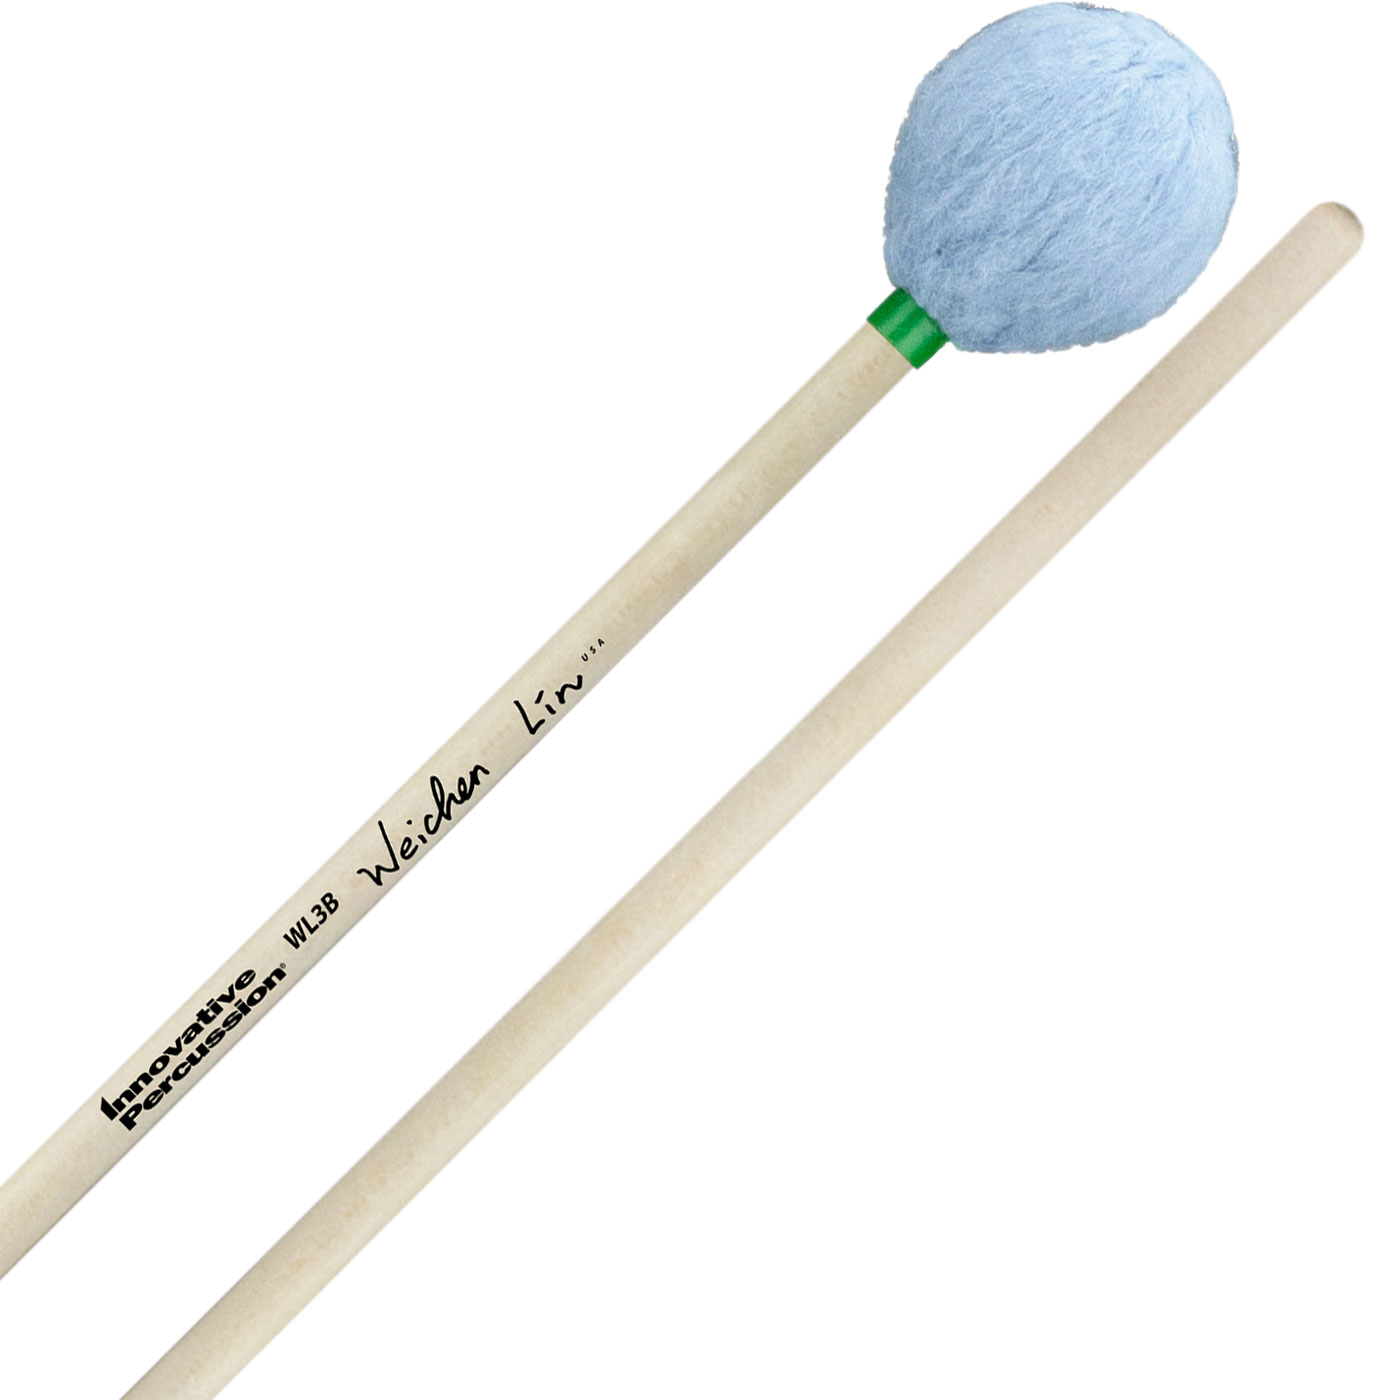 Innovative Percussion Wei-Chen Lin Signature Medium Soft Marimba Mallets with Birch Handles